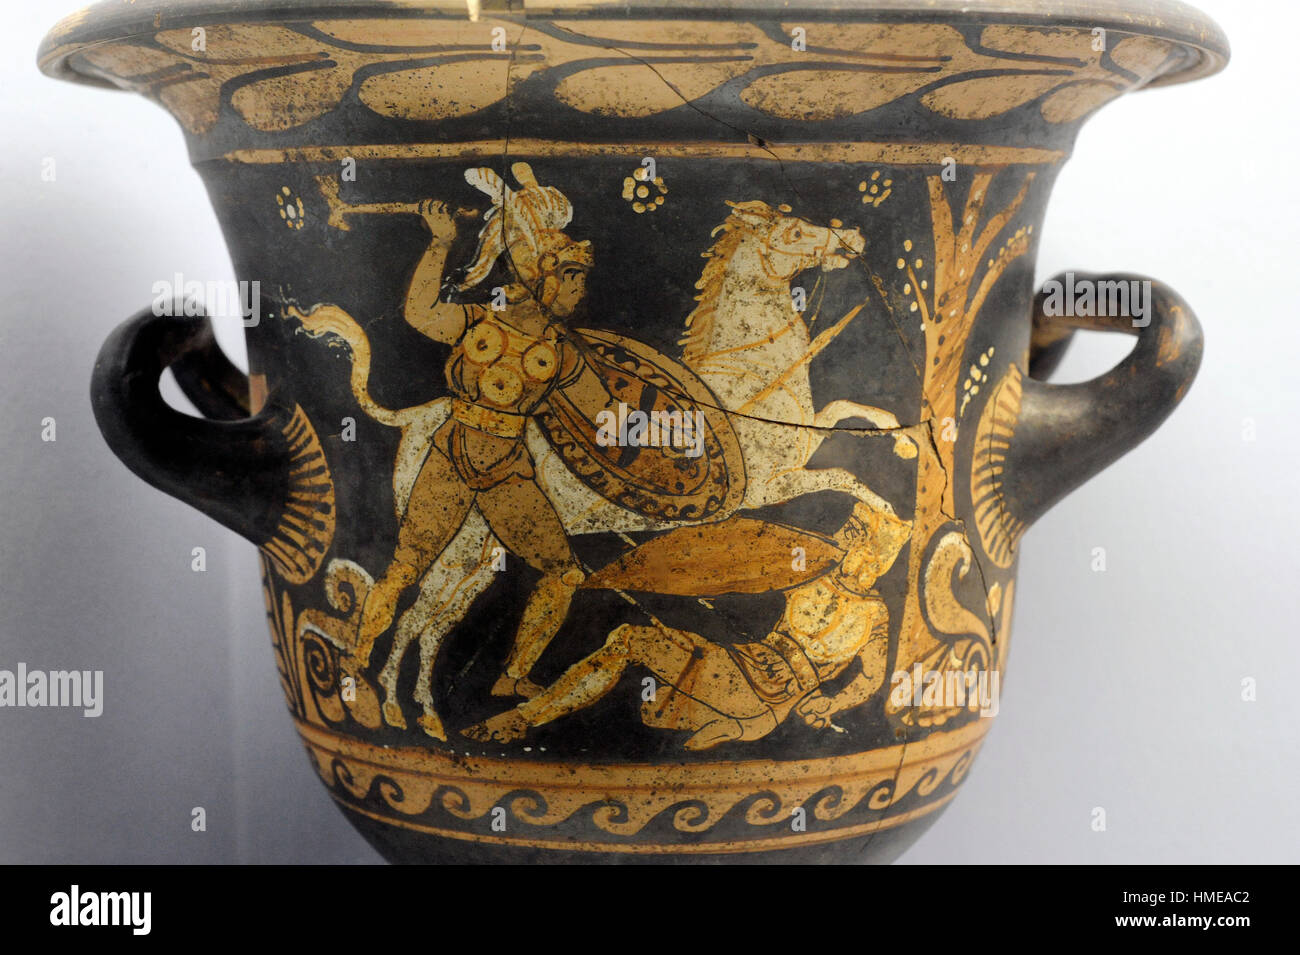 Krater depicting a battle scene. A Samnite strikes a warrior on the ground next to a tree. Detail. Made in Campania. - Stock Image